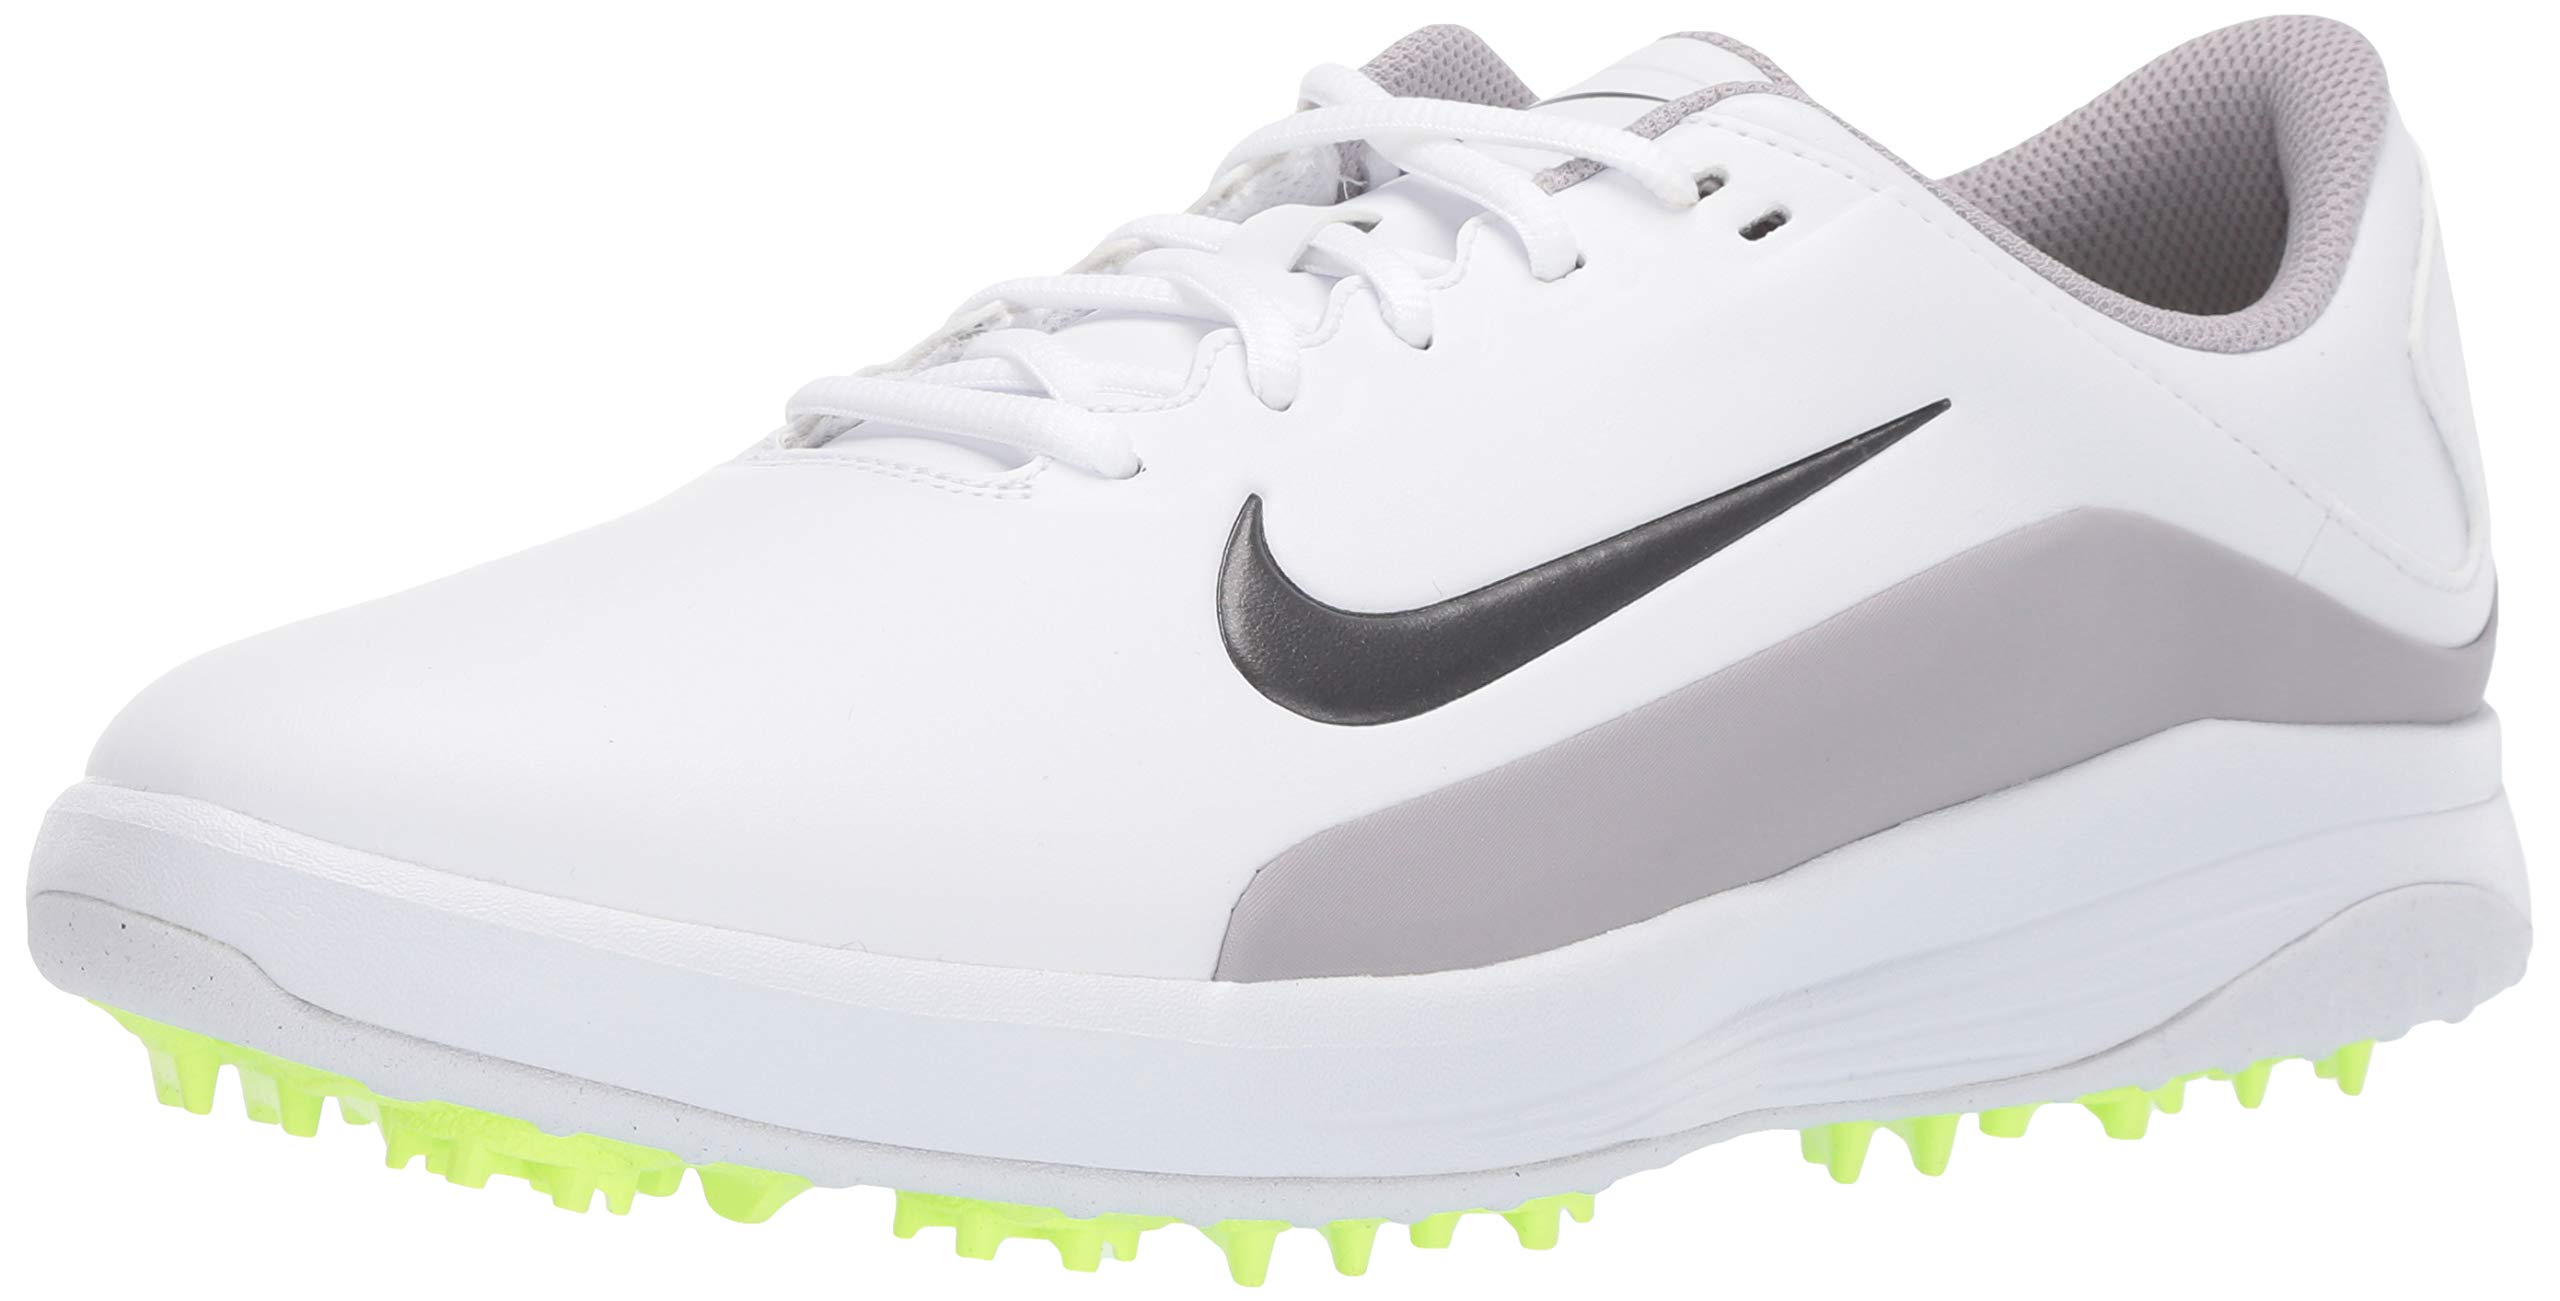 Nike Men's Vapor Golf Shoe White/Medium Grey/Atmosphere Grey Size 11 M US by Nike